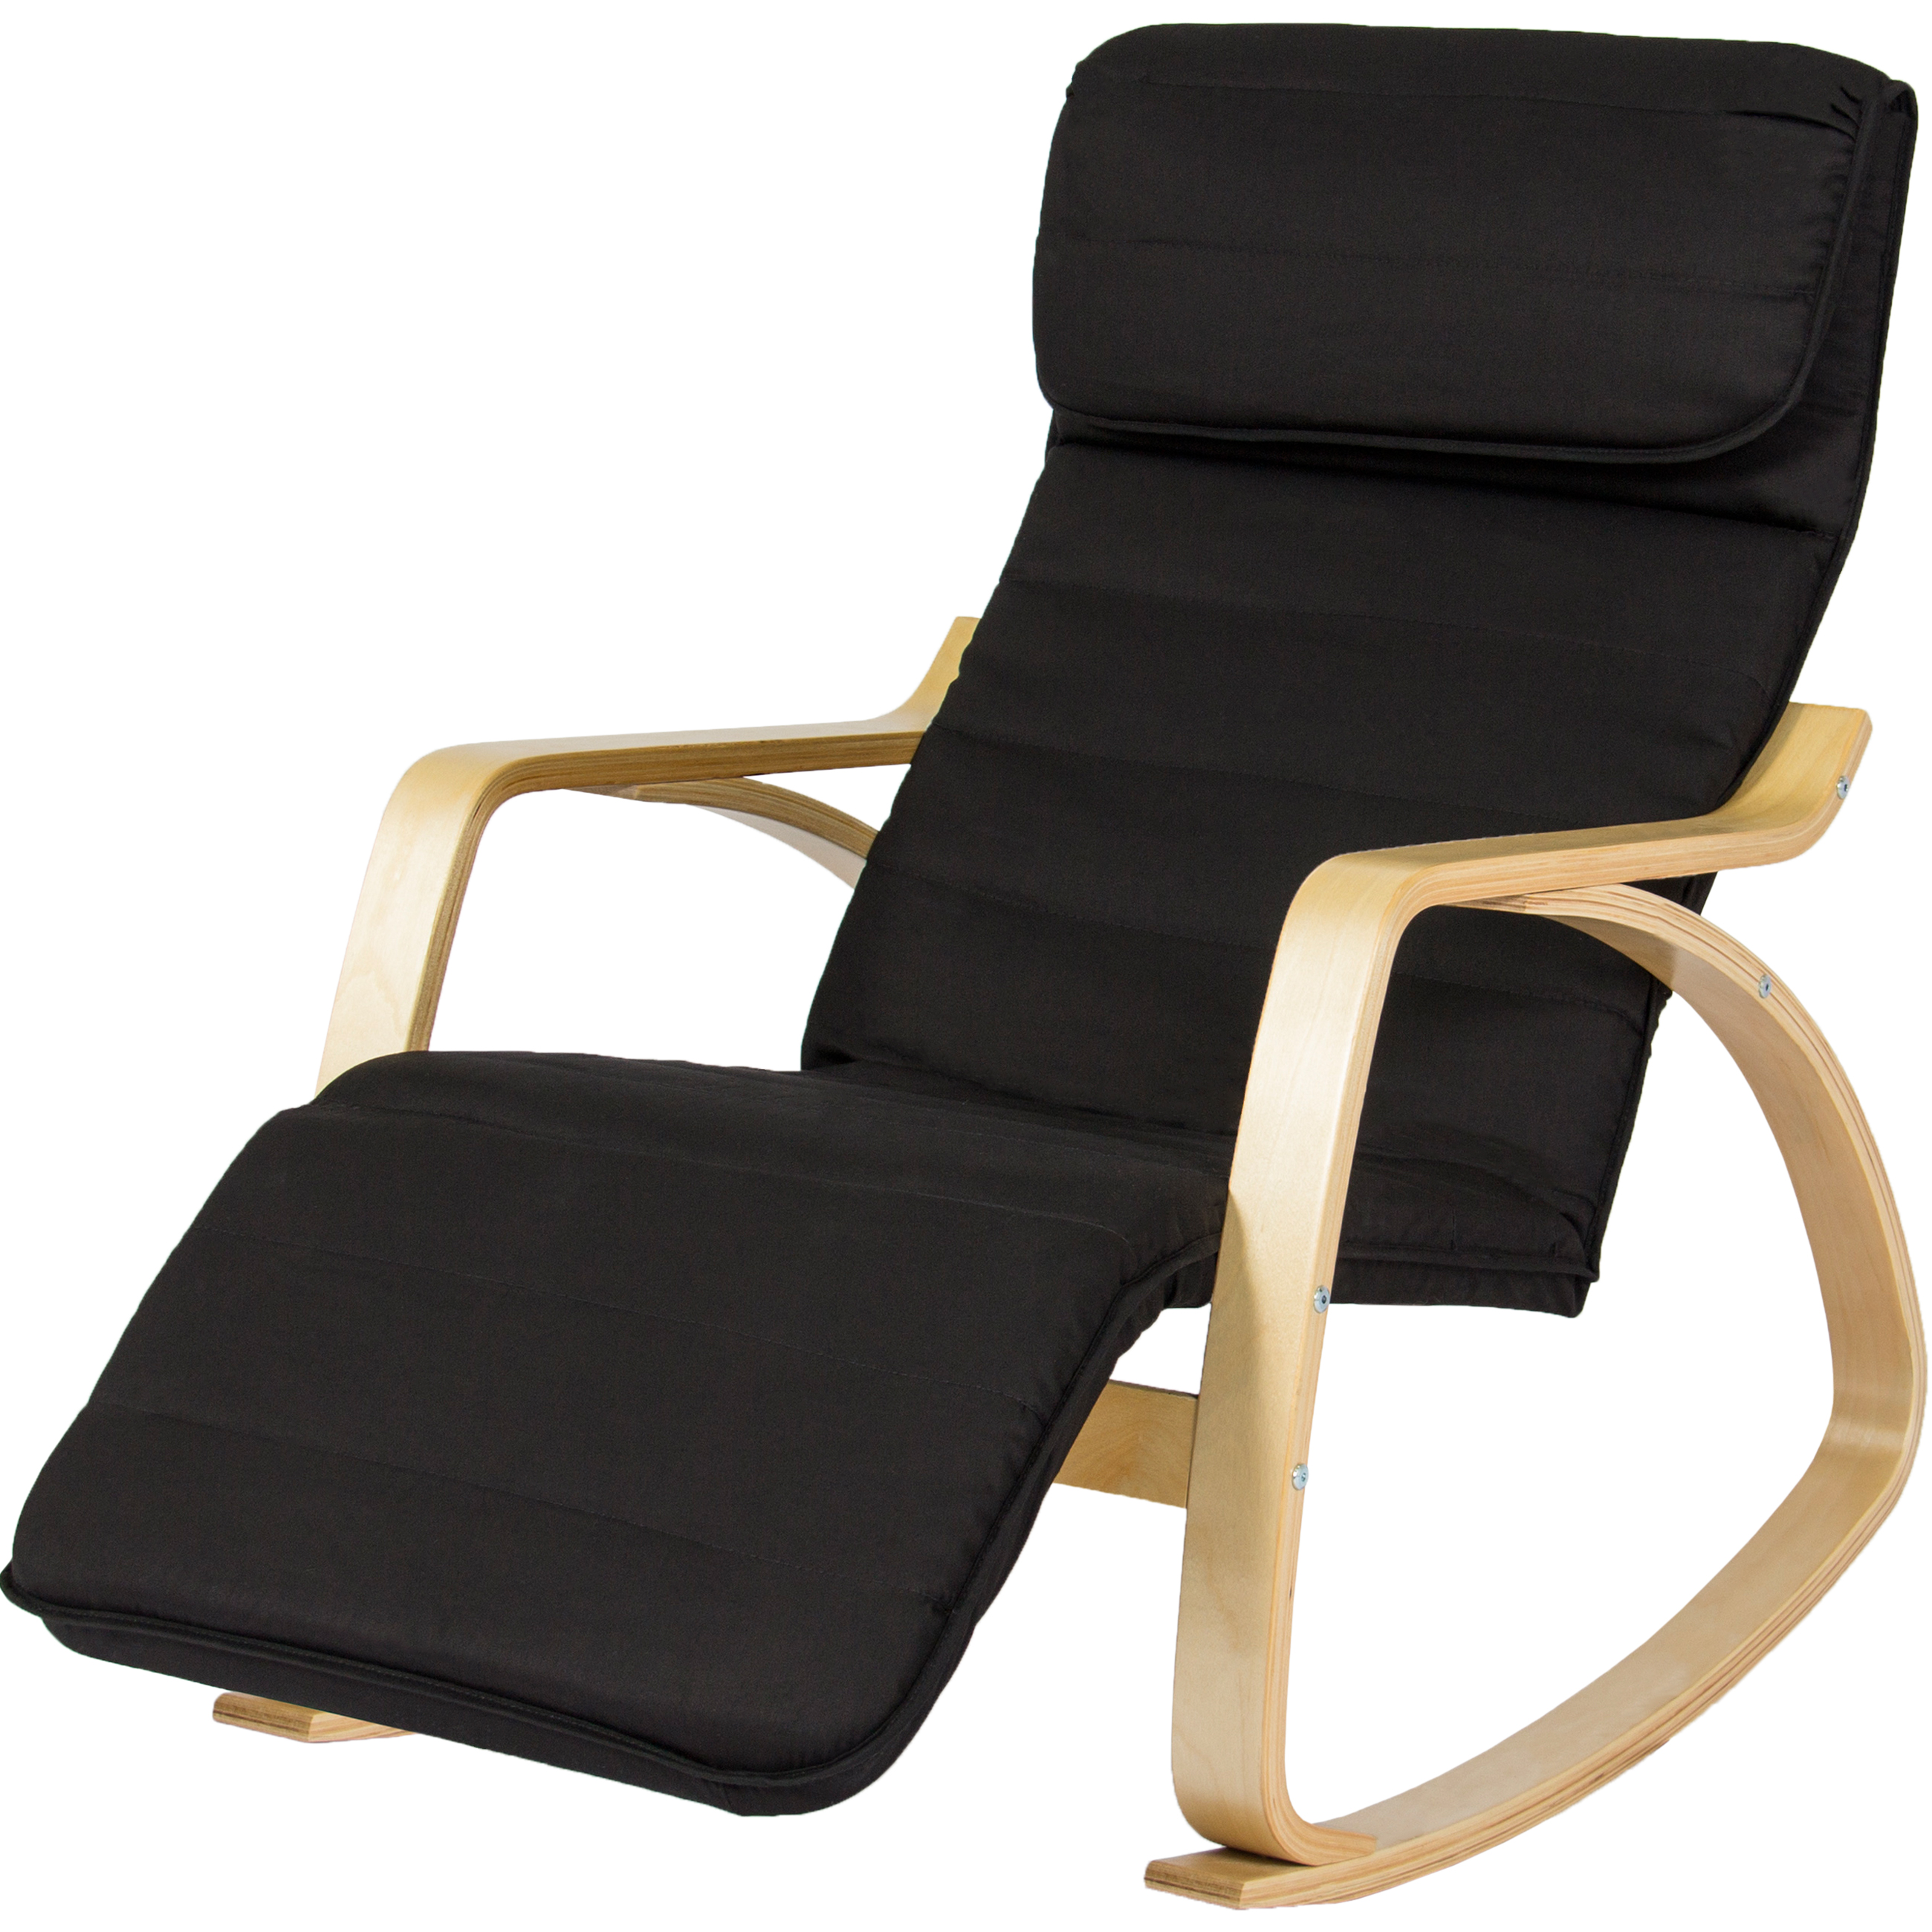 rocking chair footrest gaming stand best choice products birch bentwood cushioned w adjustable leg rest black walmart com